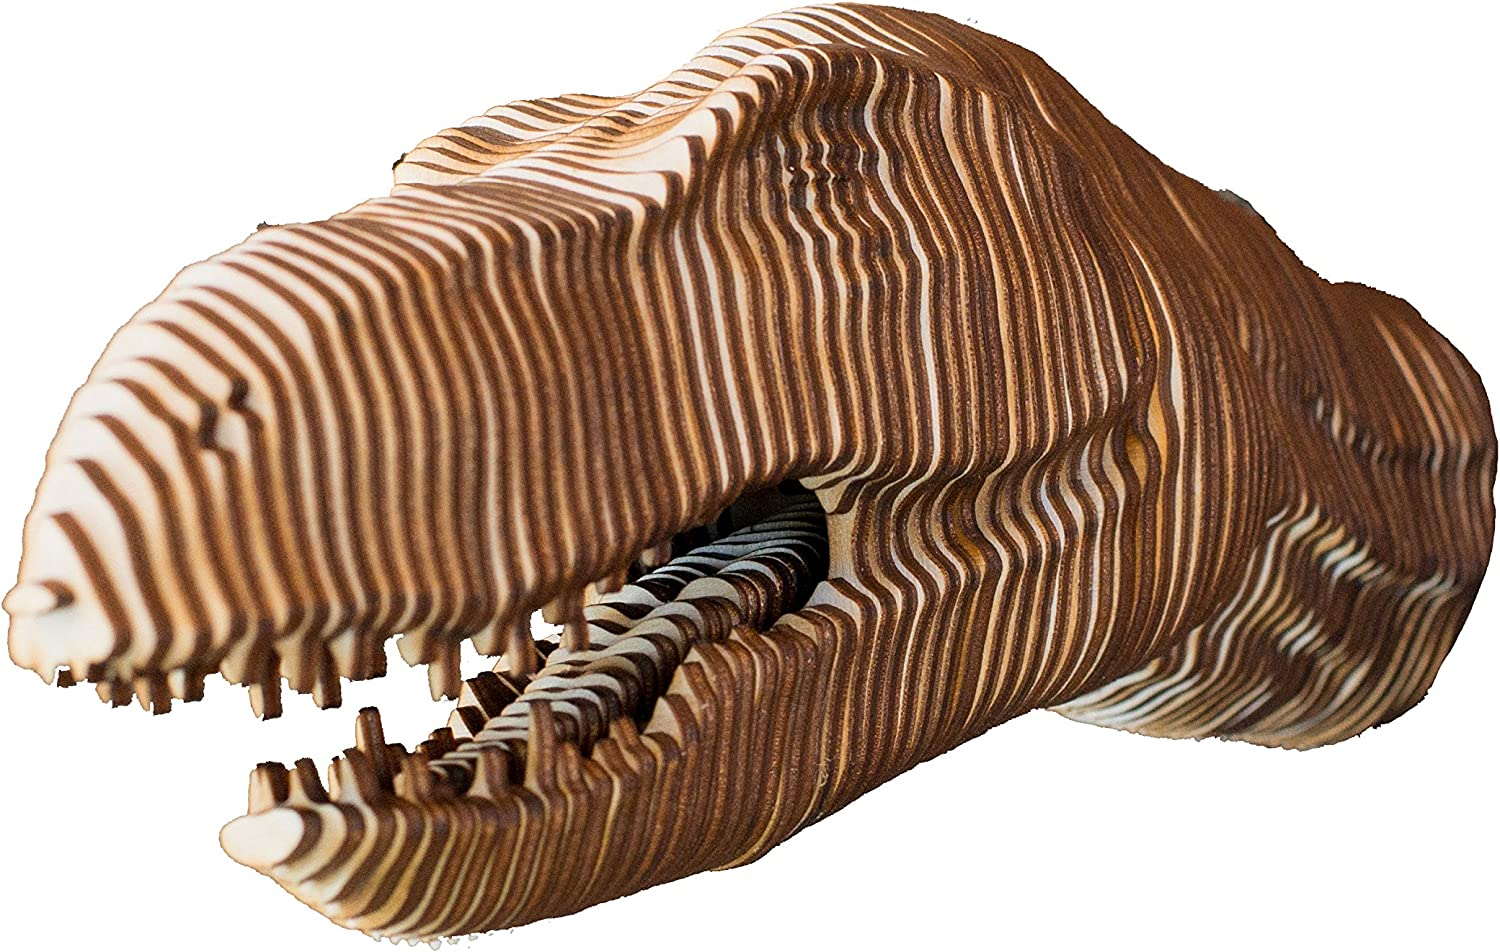 Crafts - 3D Raptor Head Puzzle Kit Small Wood Model store Raw Max 42% OFF